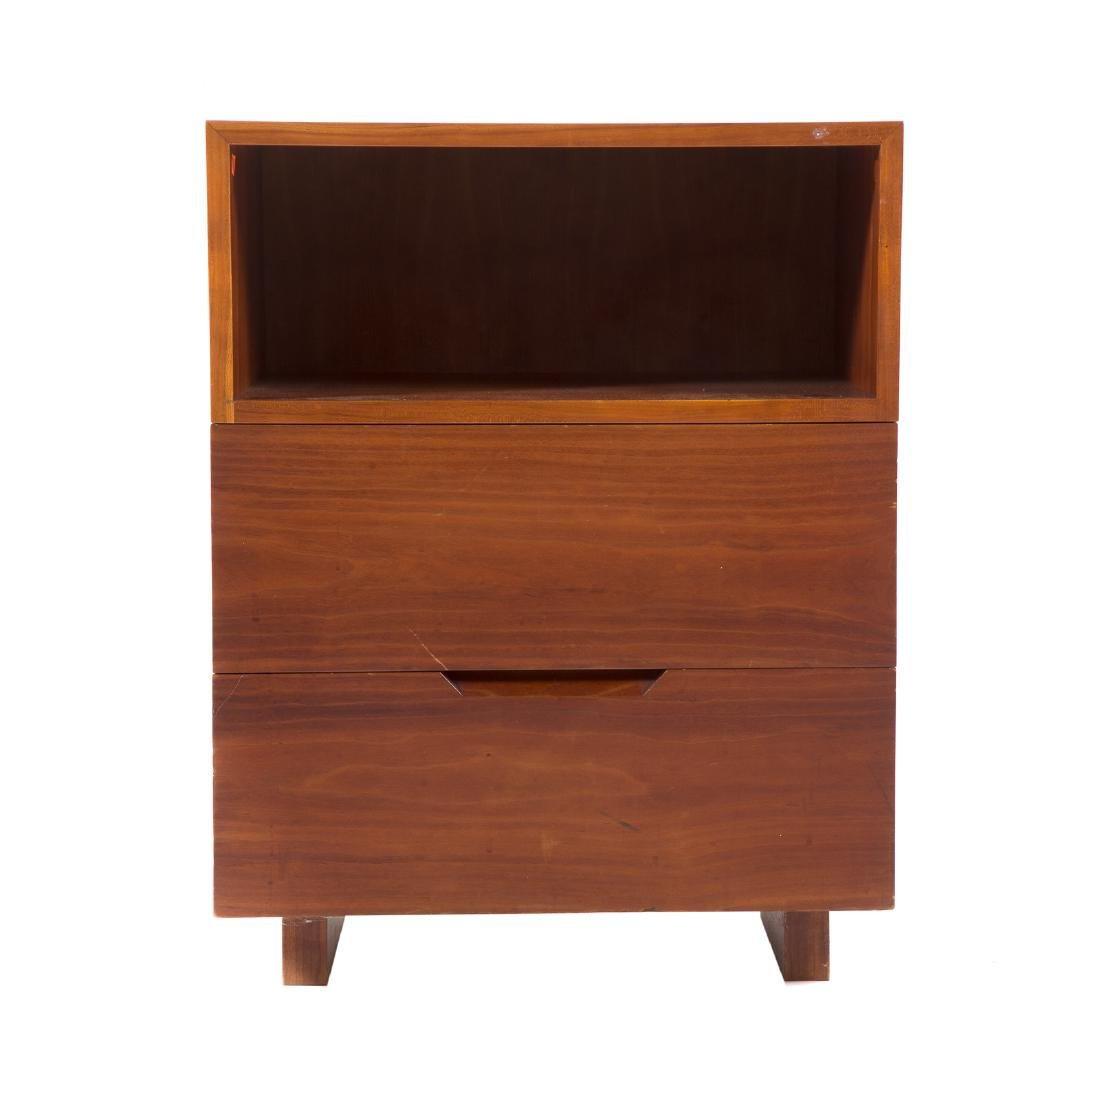 Attributed to George Nakashima. Custom Side Table